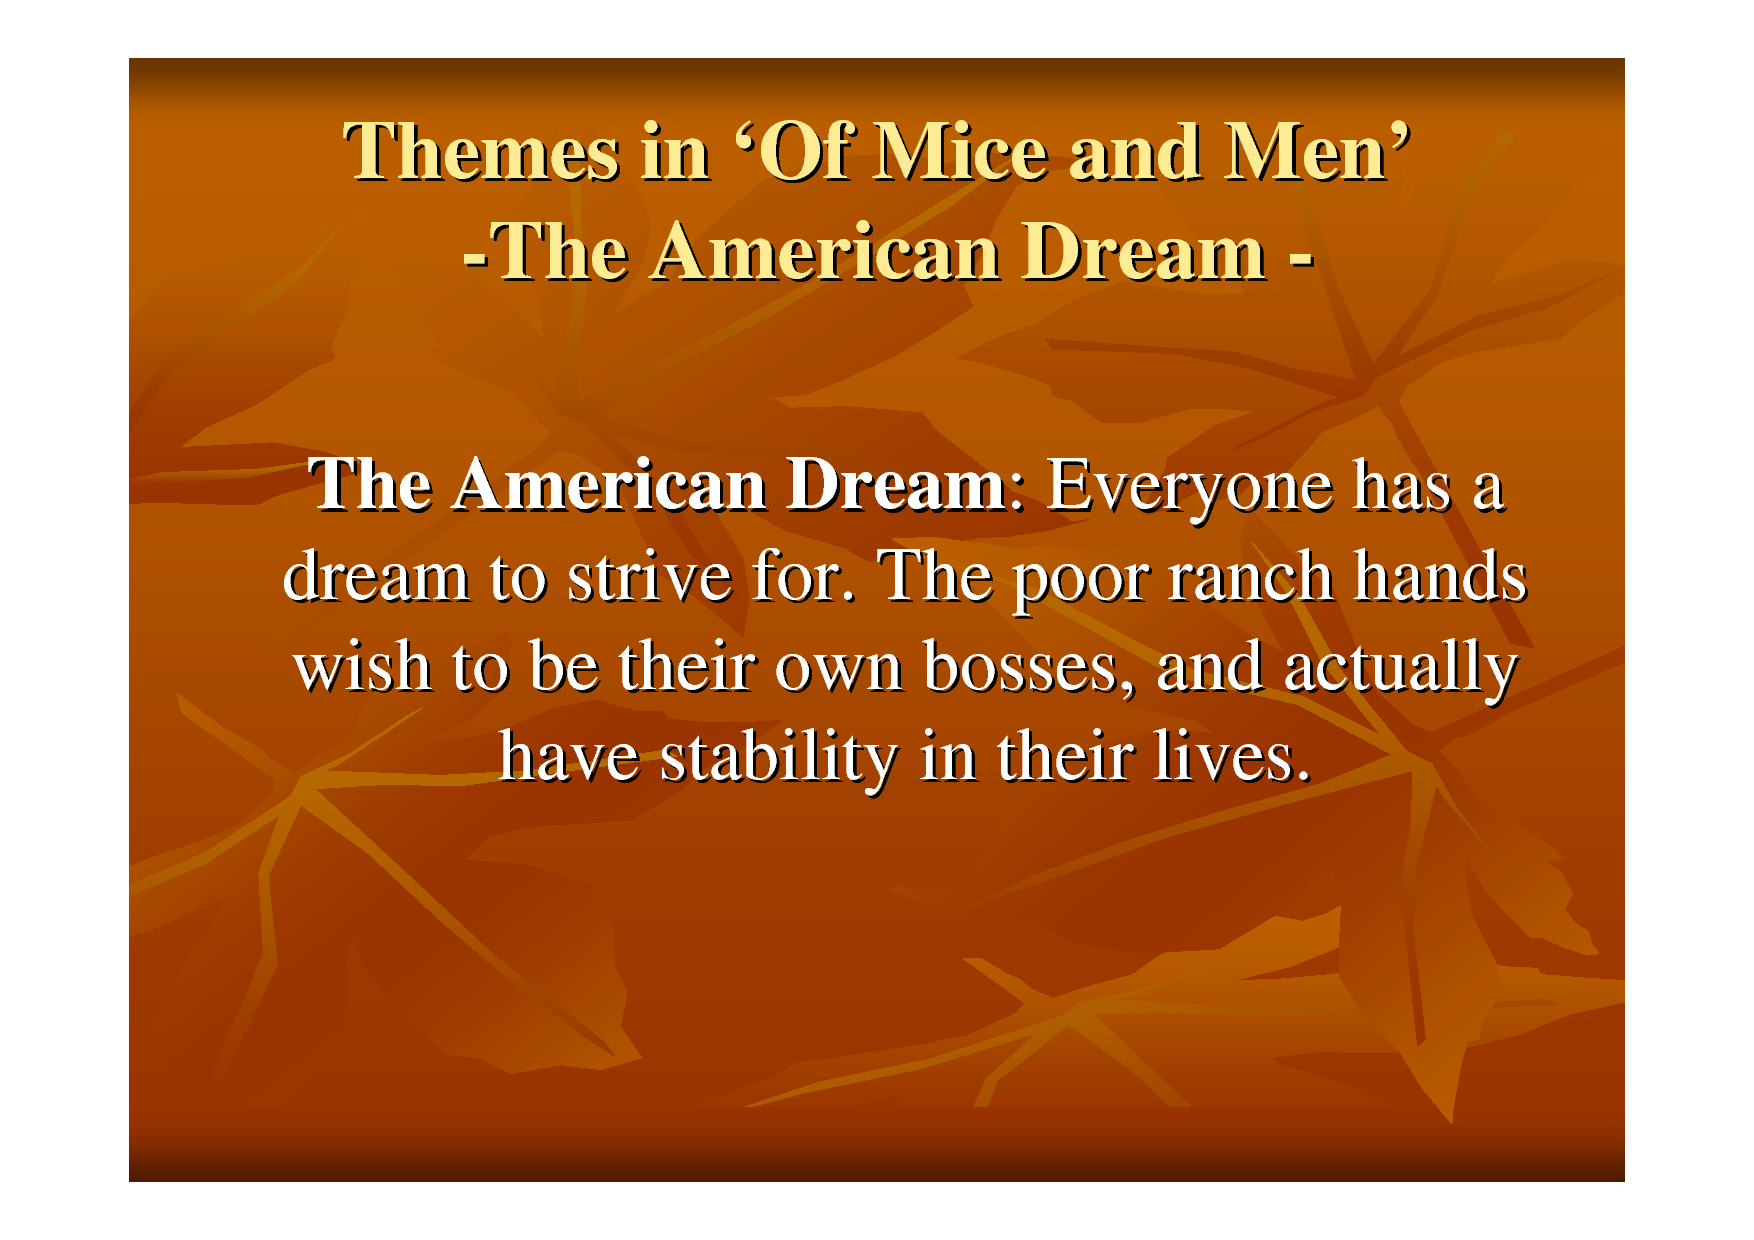 of mice and men friendship quotes A secondary school revision resource for gcse english literature about the plot, characters and themes in john steinbeck's of mice and men.